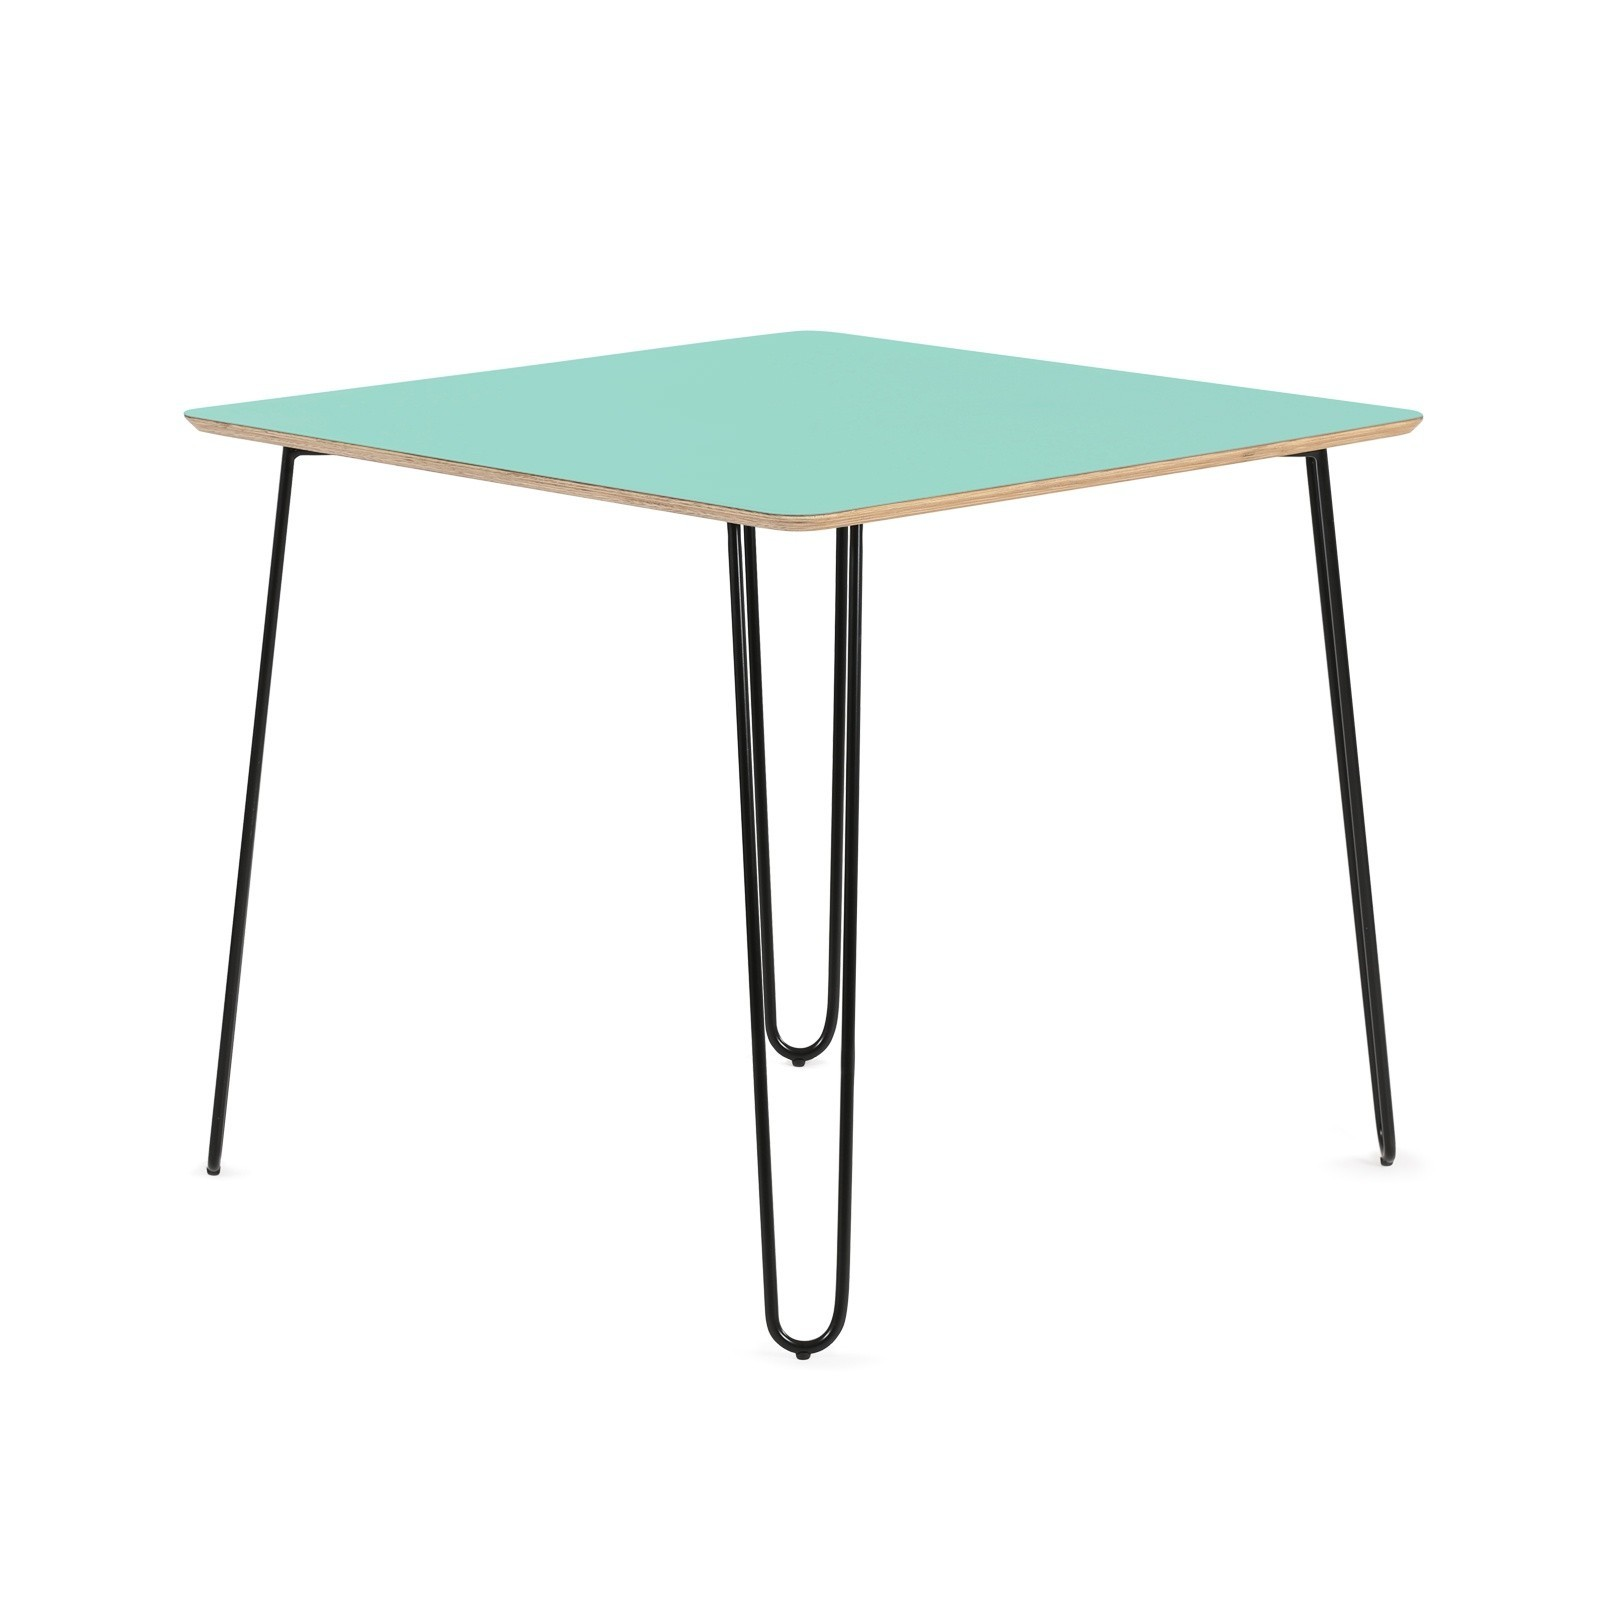 Mannequin table - MQ 03 - mint